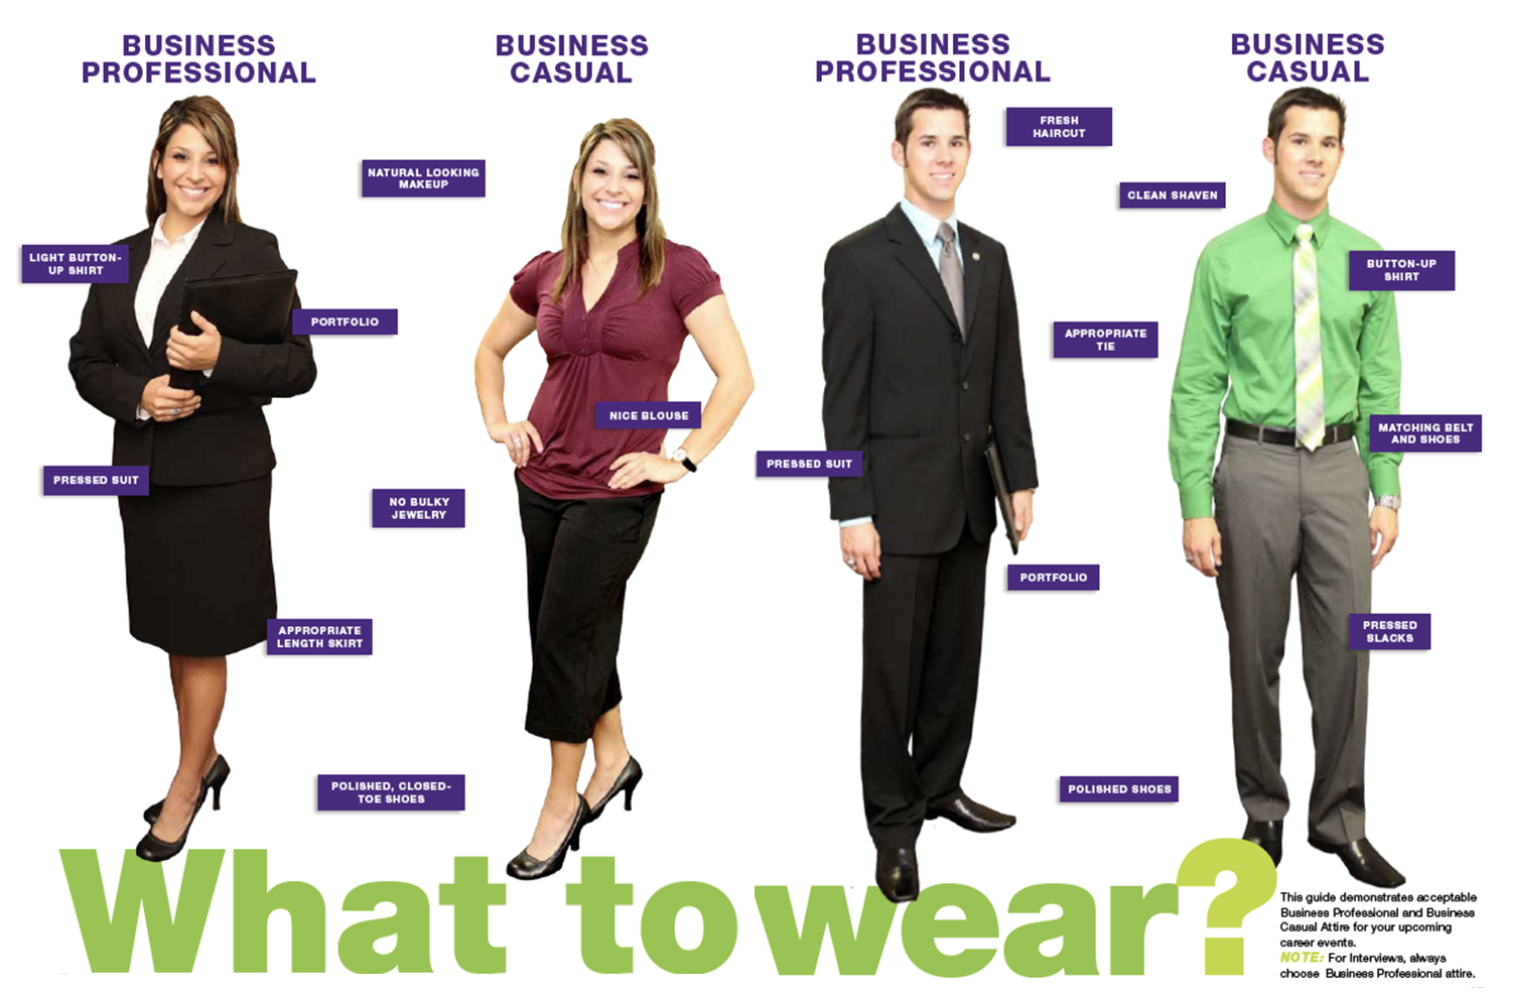 Business casual vs business professional attire for a dental school interview